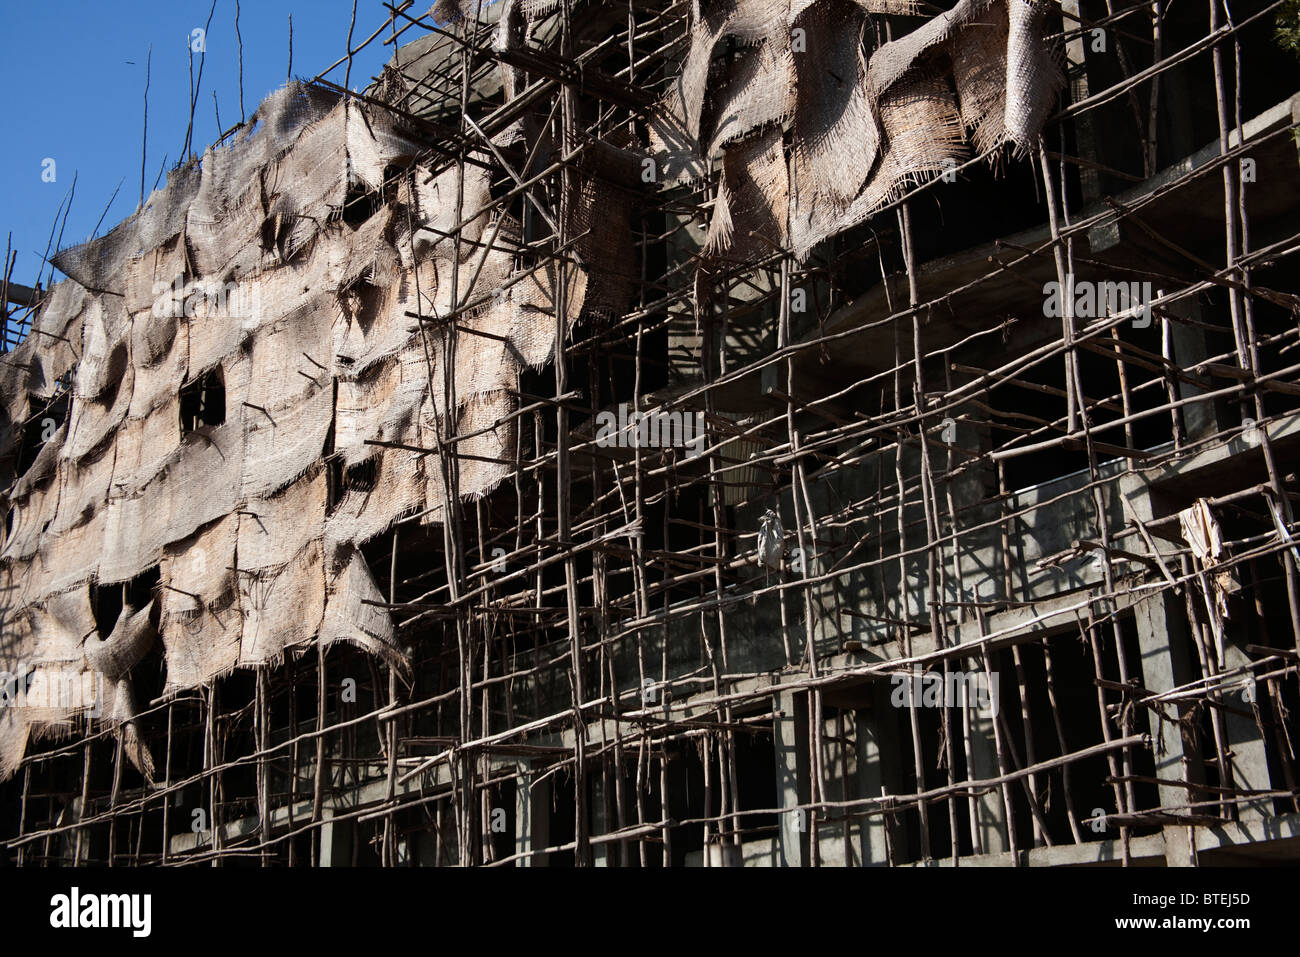 Construction scaffolding and screens in downtown Awassa on a multi-story building - Stock Image